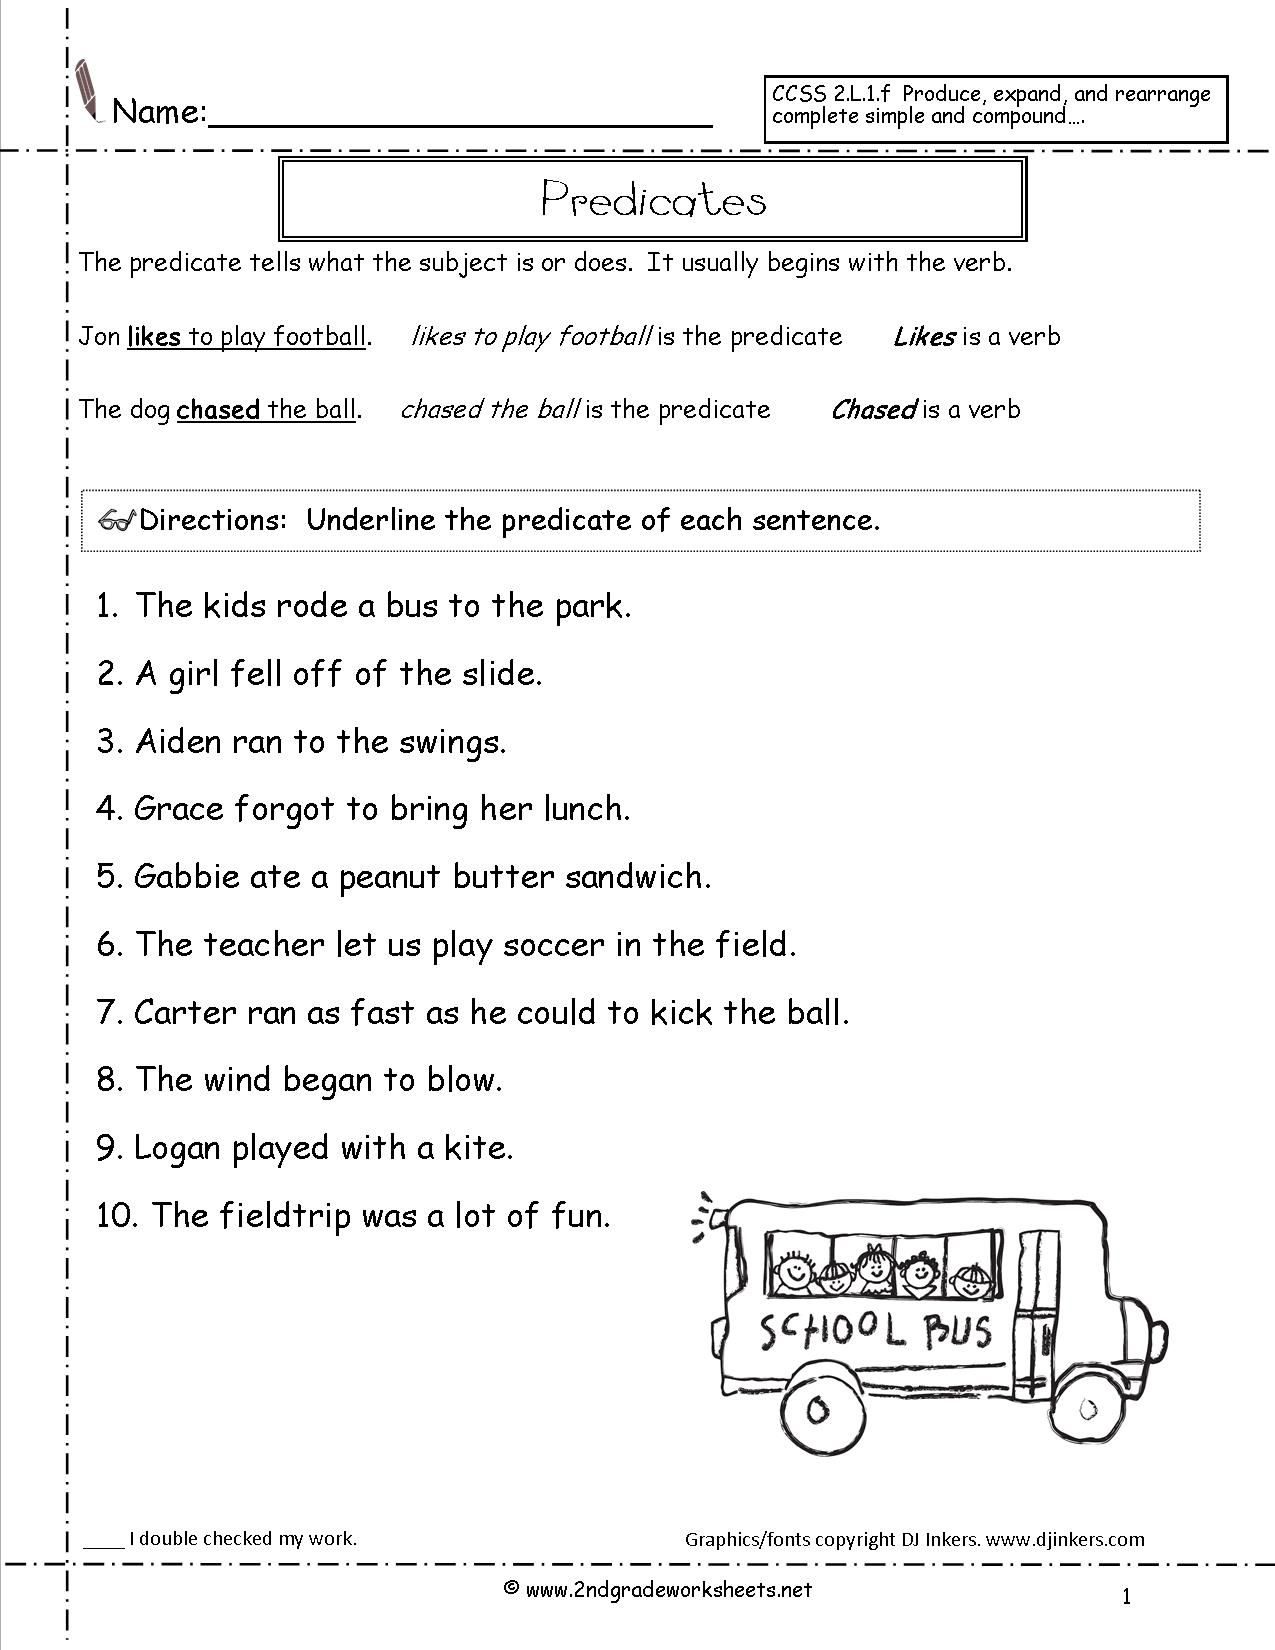 hight resolution of 4th Grade Simple Predicate Worksheet   Printable Worksheets and Activities  for Teachers